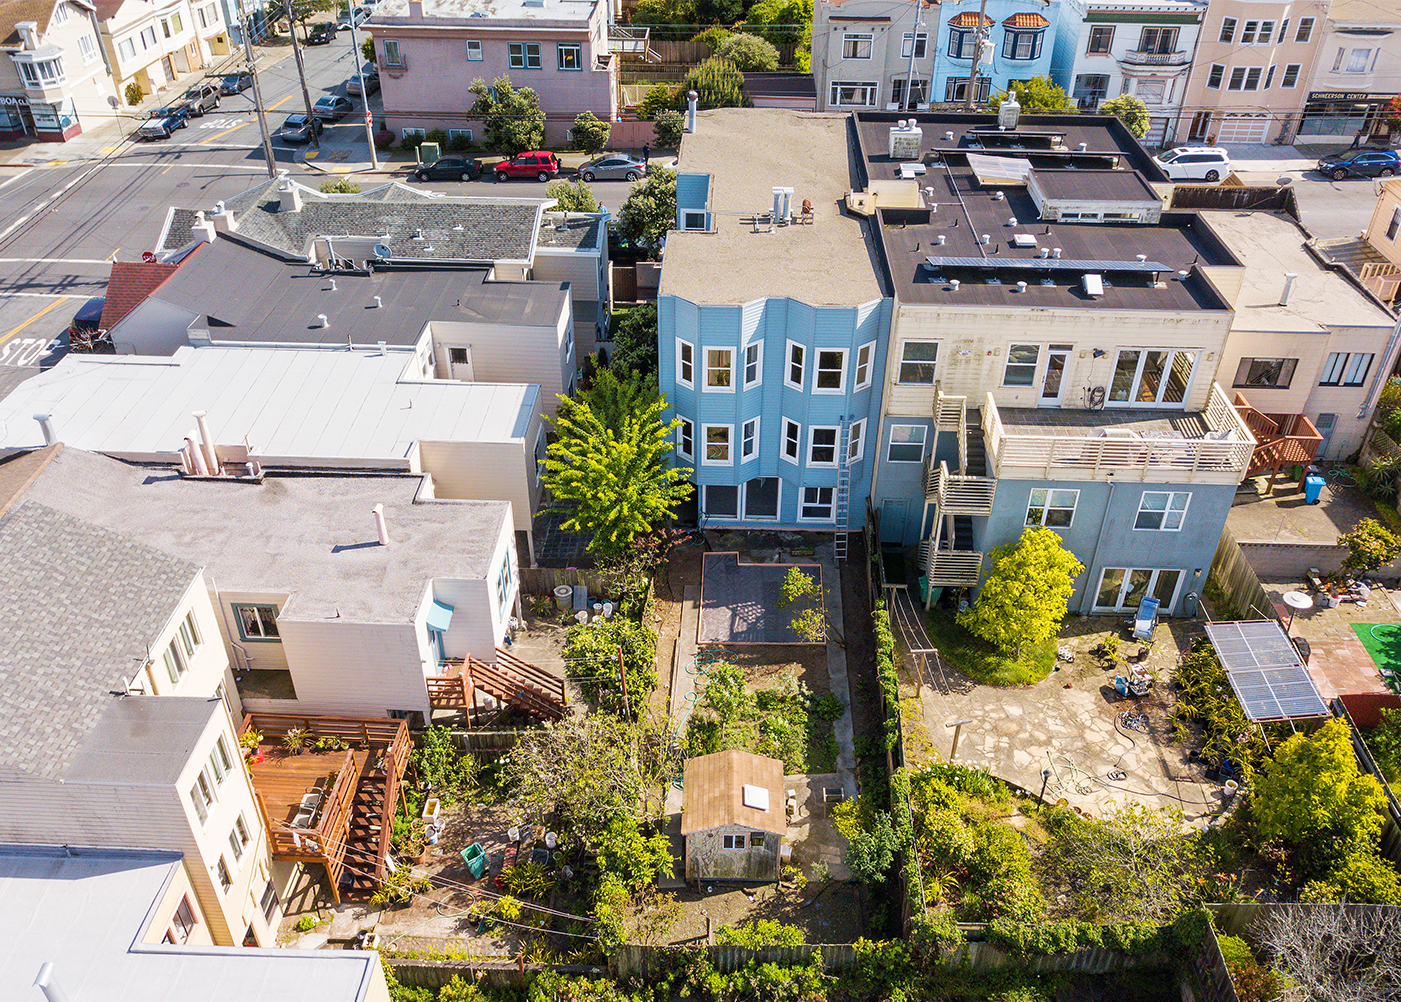 2618 Balboa St, San Francisco Aerial Backyard